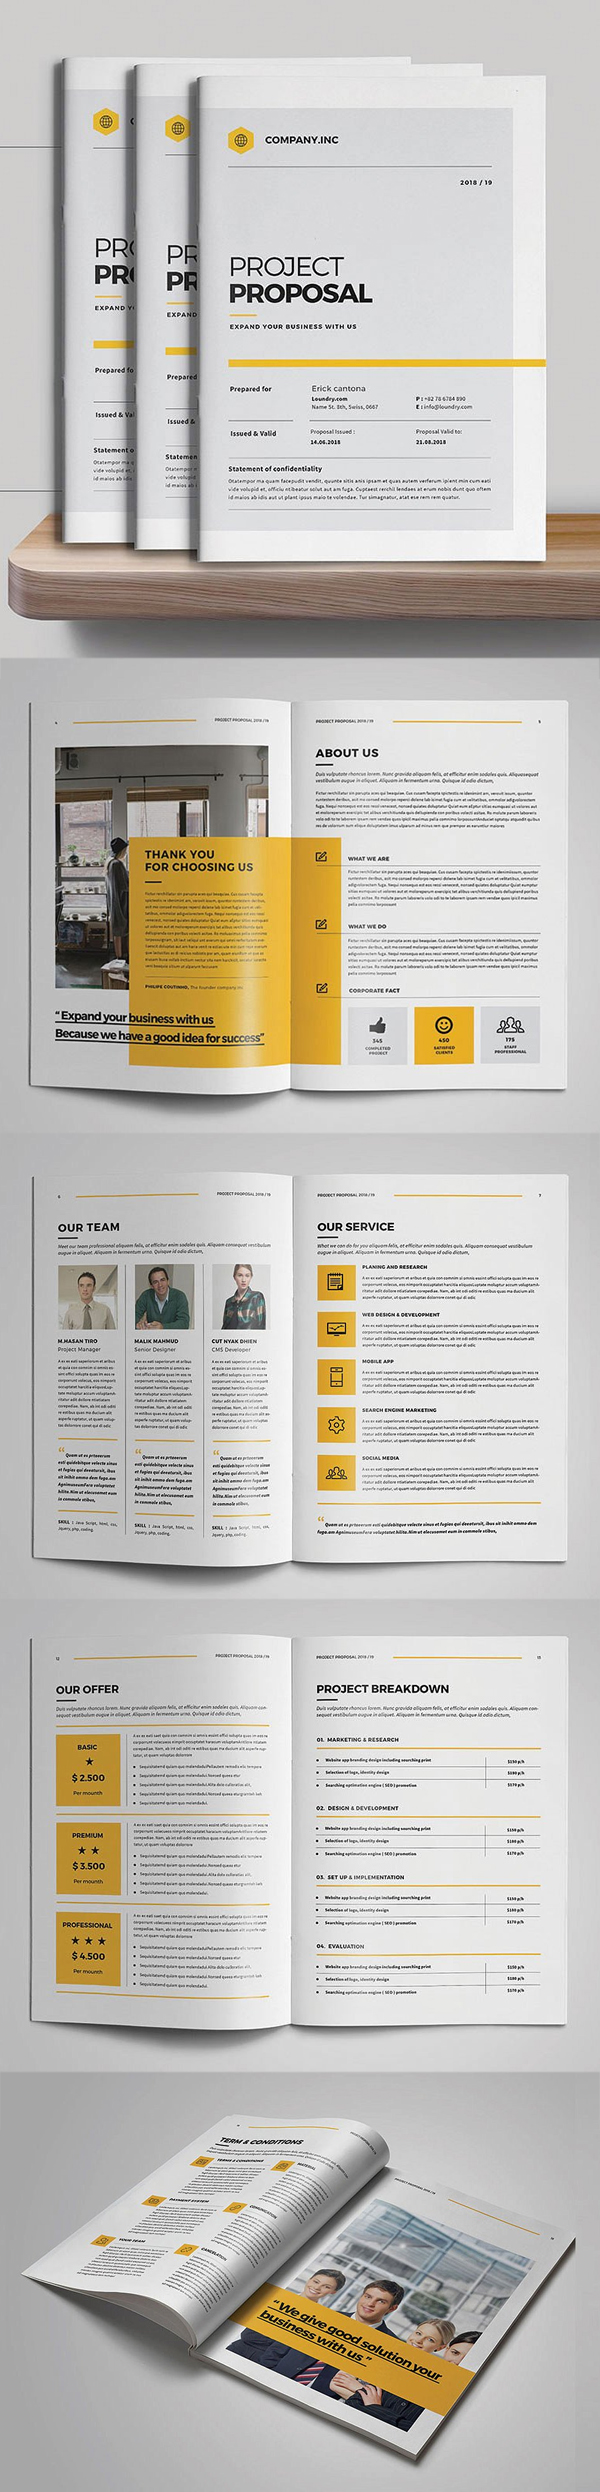 Business proposal templates design graphic design junction professional business proposal templates design 13 flashek Images